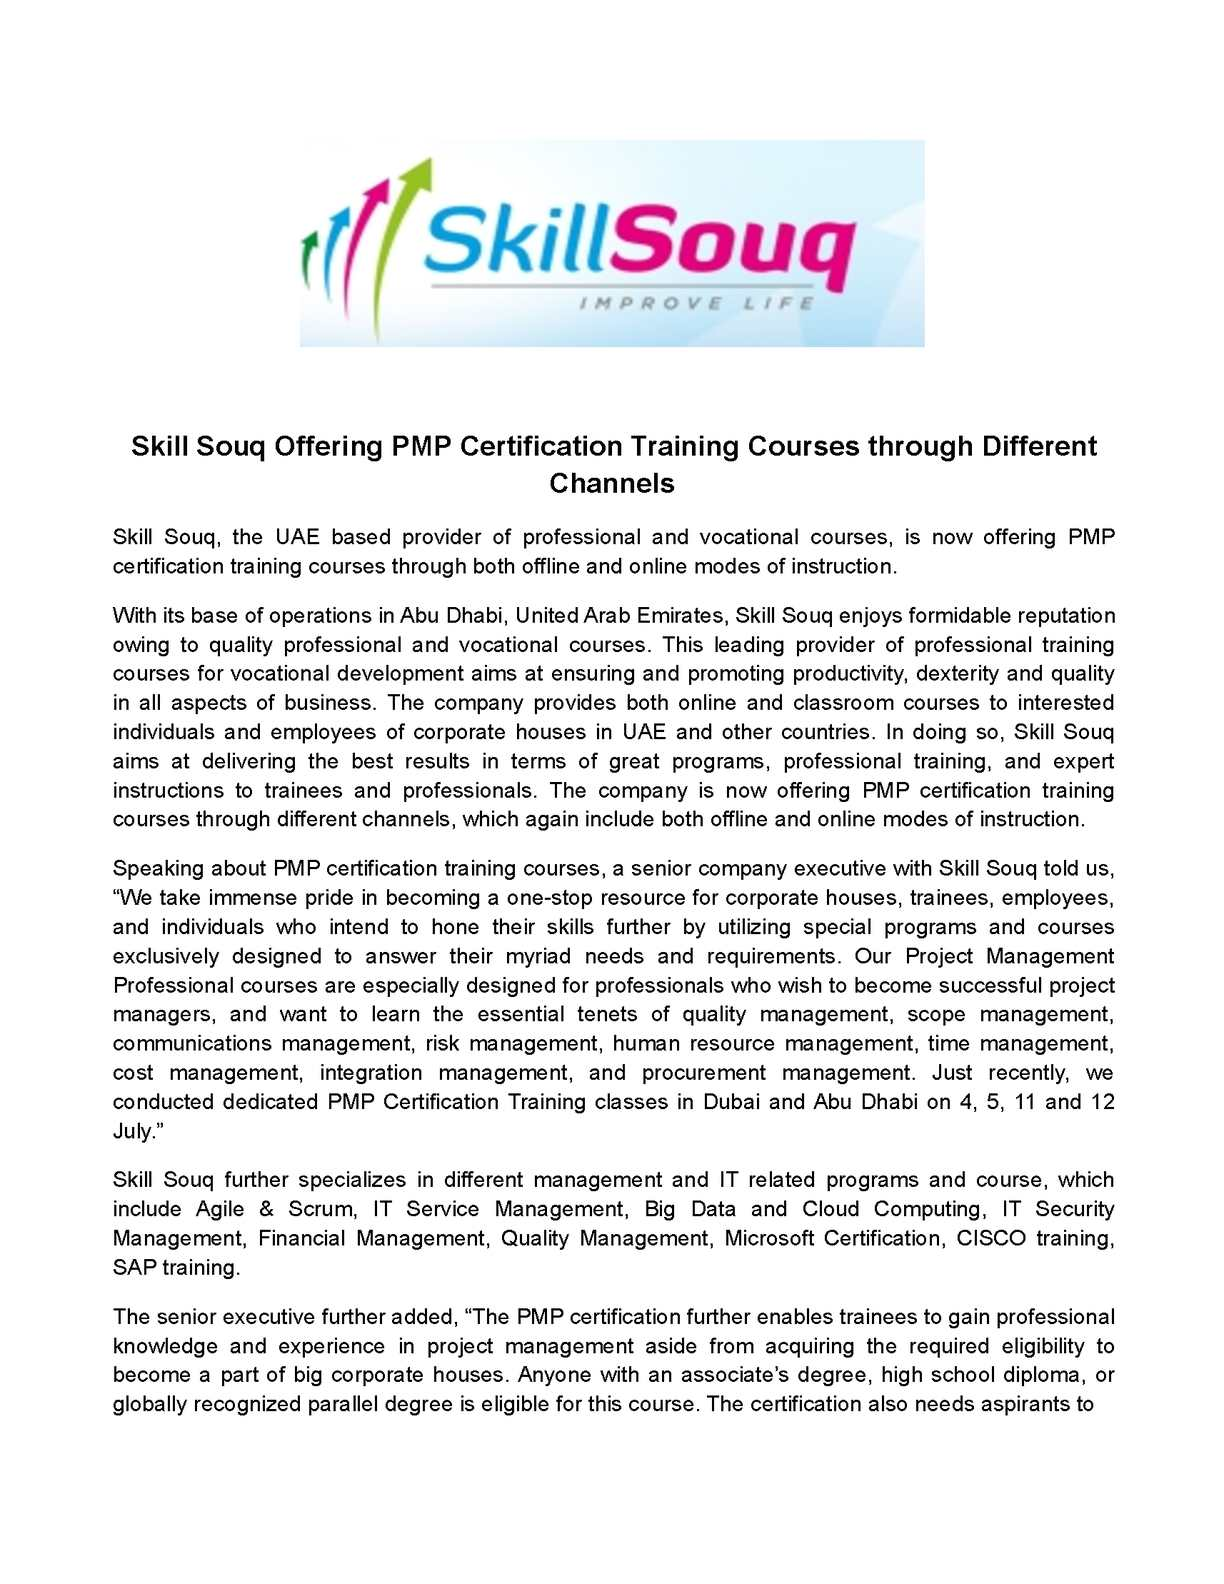 Calamo Skill Souq Offering Pmp Certification Training Courses